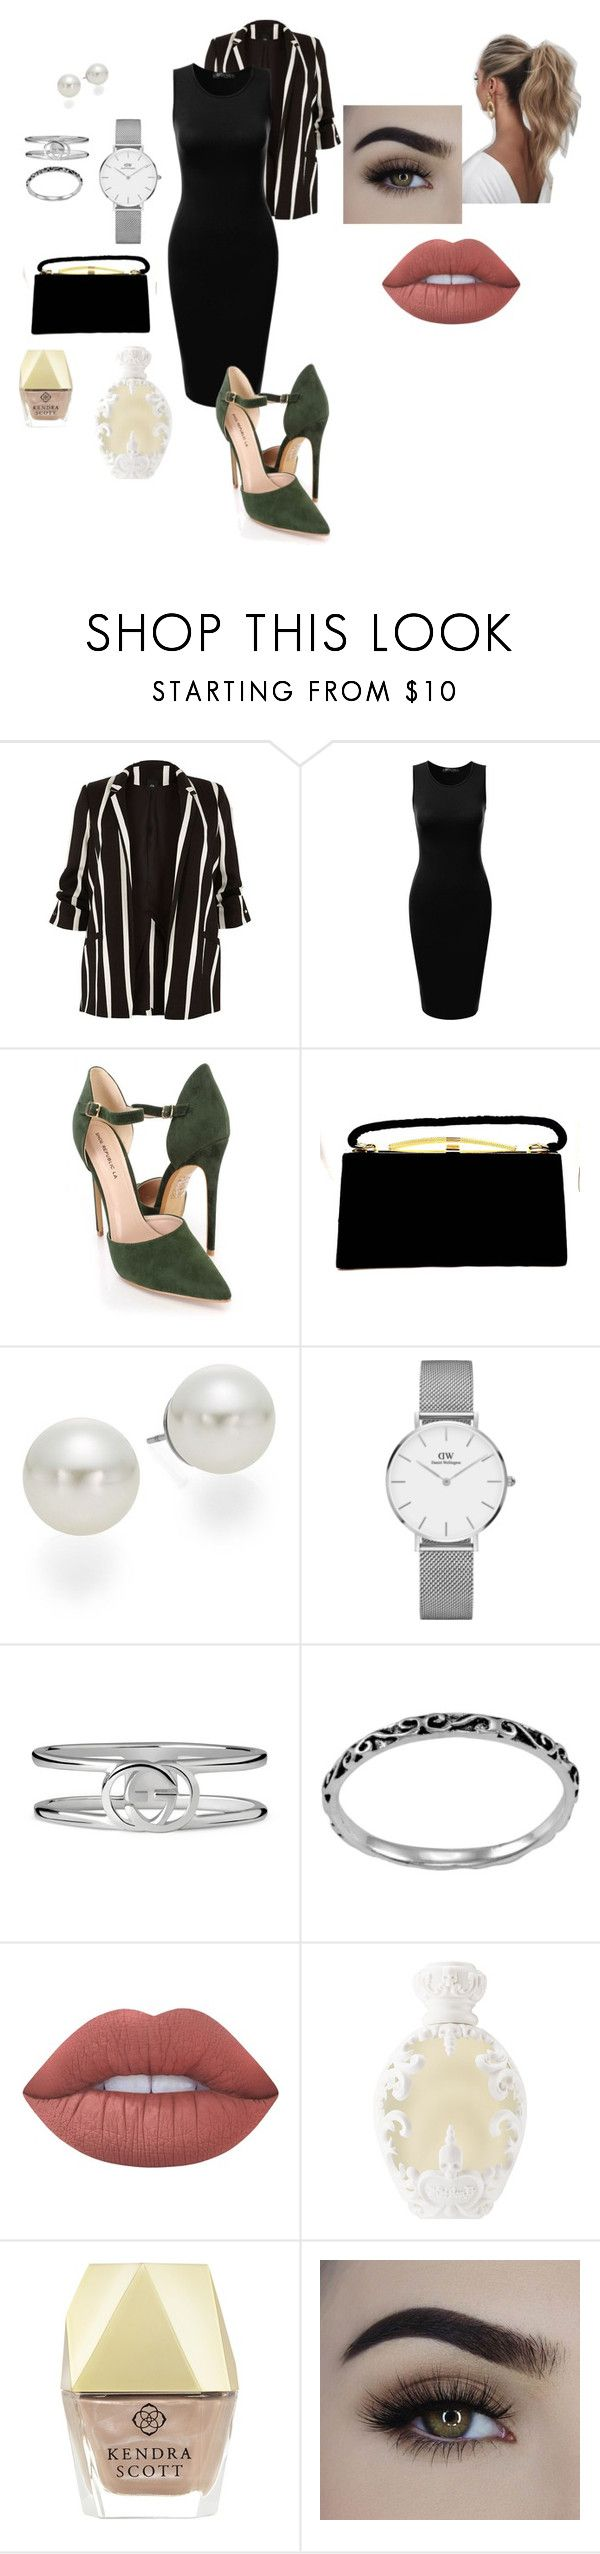 """High end Corporate trendy"" by jeena23 ❤ liked on Polyvore featuring River Island, AK Anne Klein, Daniel Wellington, Gucci, Itsy Bitsy, Lime Crime, Kat Von D, Kendra Scott, Love Couture and Trendy"